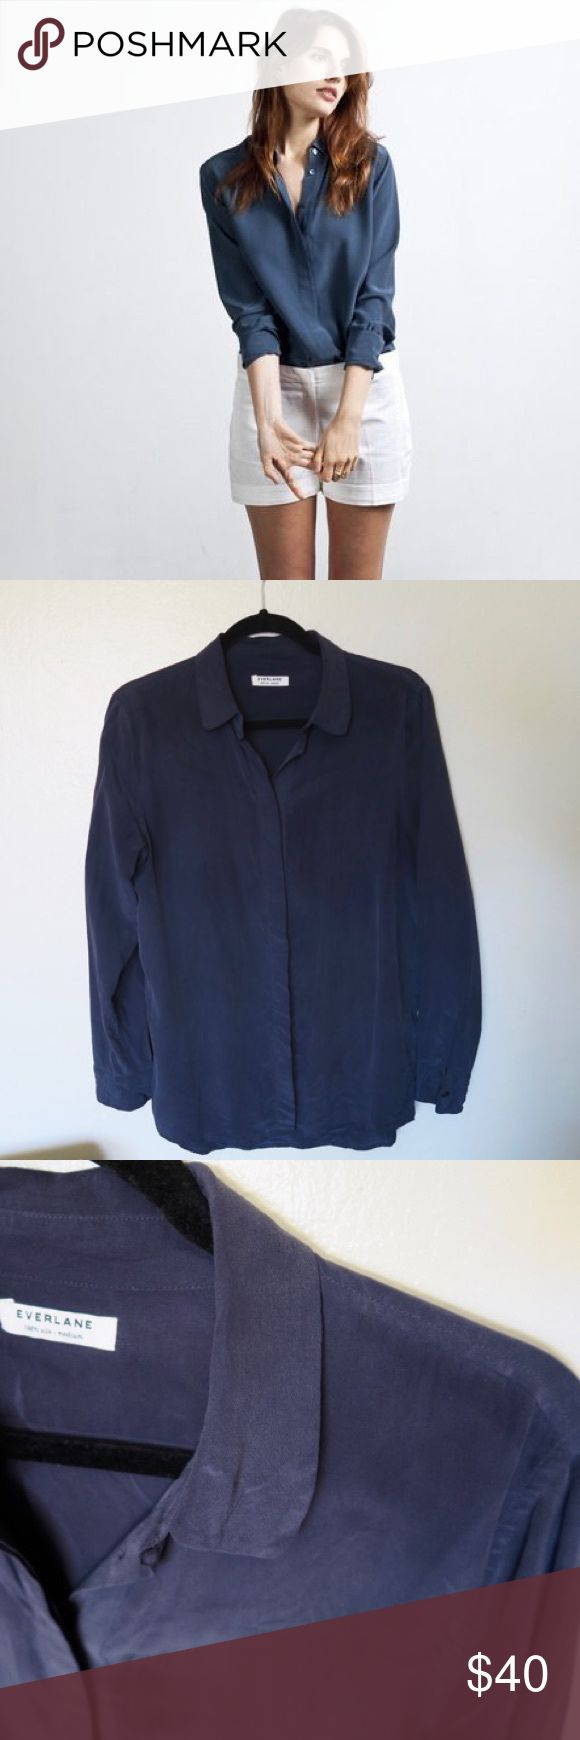 Everlane Brushed Silk Navy Blouse, medium Everlane Brushed Silk Navy Blouse, medium   Beautiful brushed silk navy blouse with rounded collar and hidden buttons. Good used condition. No tears or pulls. Please feel free to ask any questions, or request more photographs. Everlane Tops Blouses